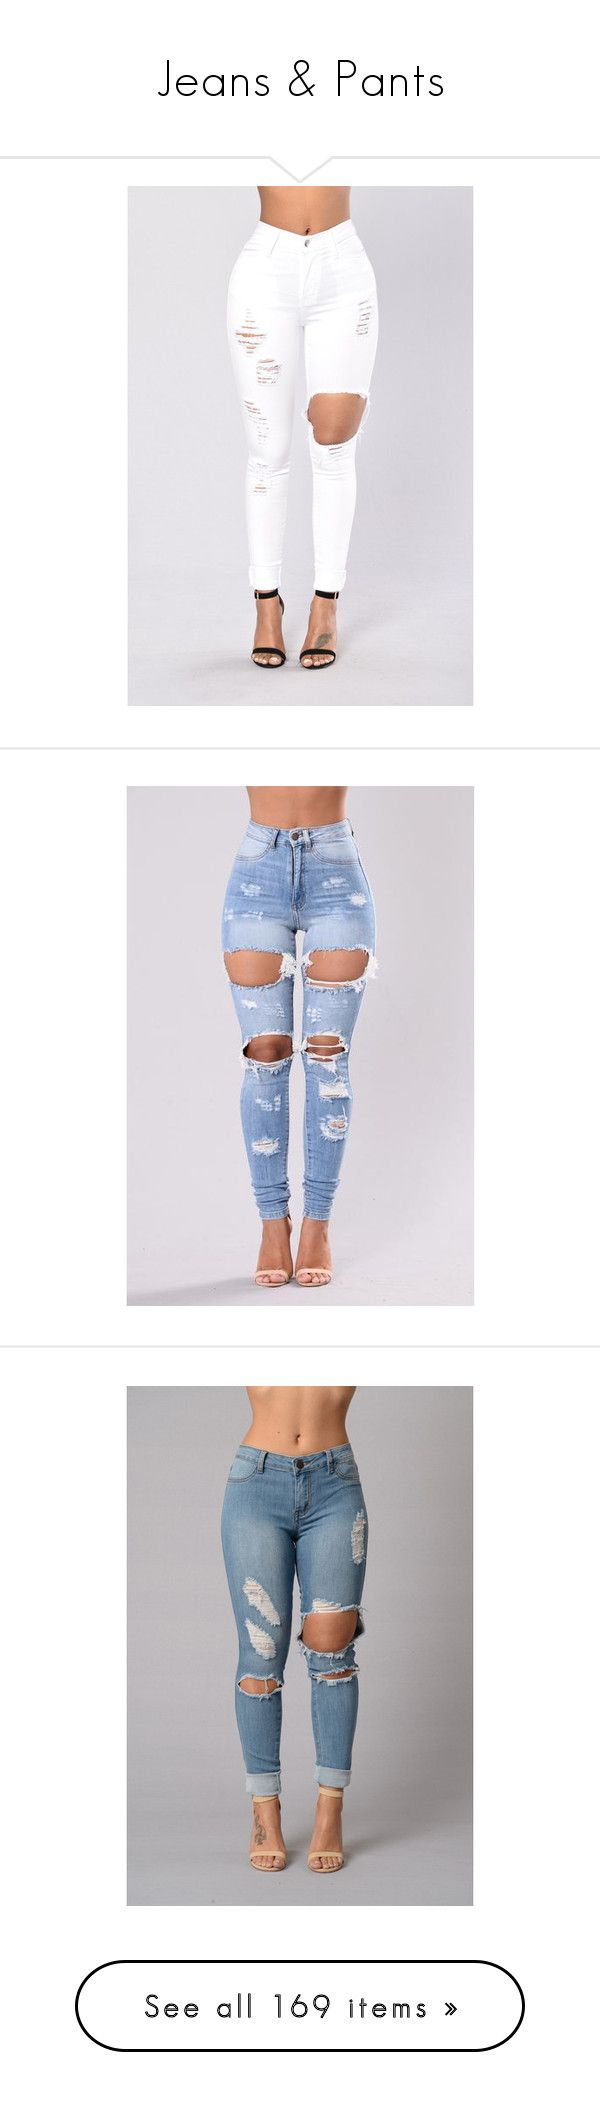 """""""Jeans & Pants"""" by amaryllis76 ❤ liked on Polyvore featuring bottoms, jeans, light blue jeans, pants, light wash jeans, distressed jeans, high waisted blue jeans, high waisted ripped skinny jeans, high-waisted jeans and blue jeans"""